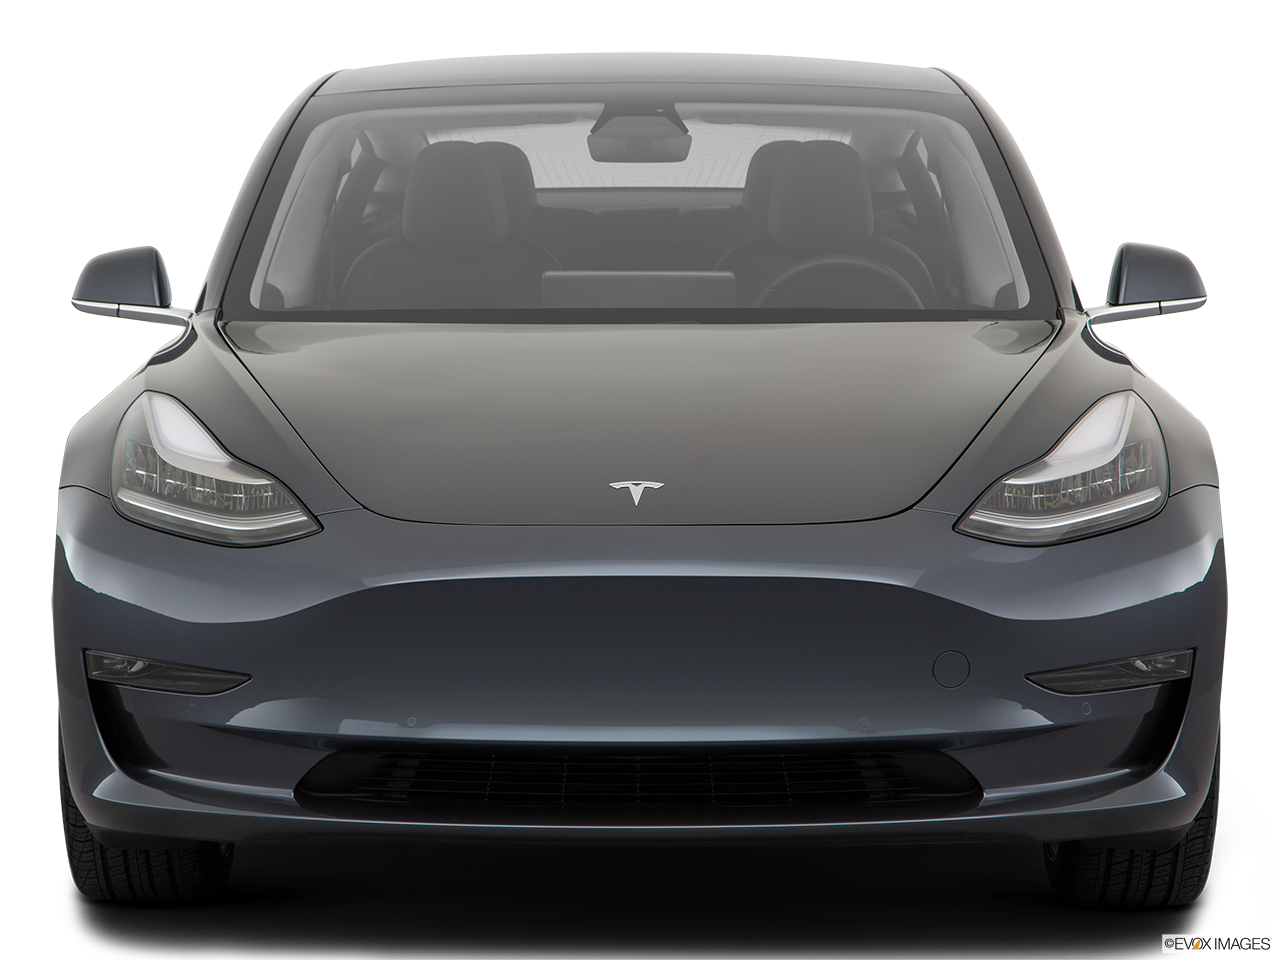 Front view of the Tesla Model 3